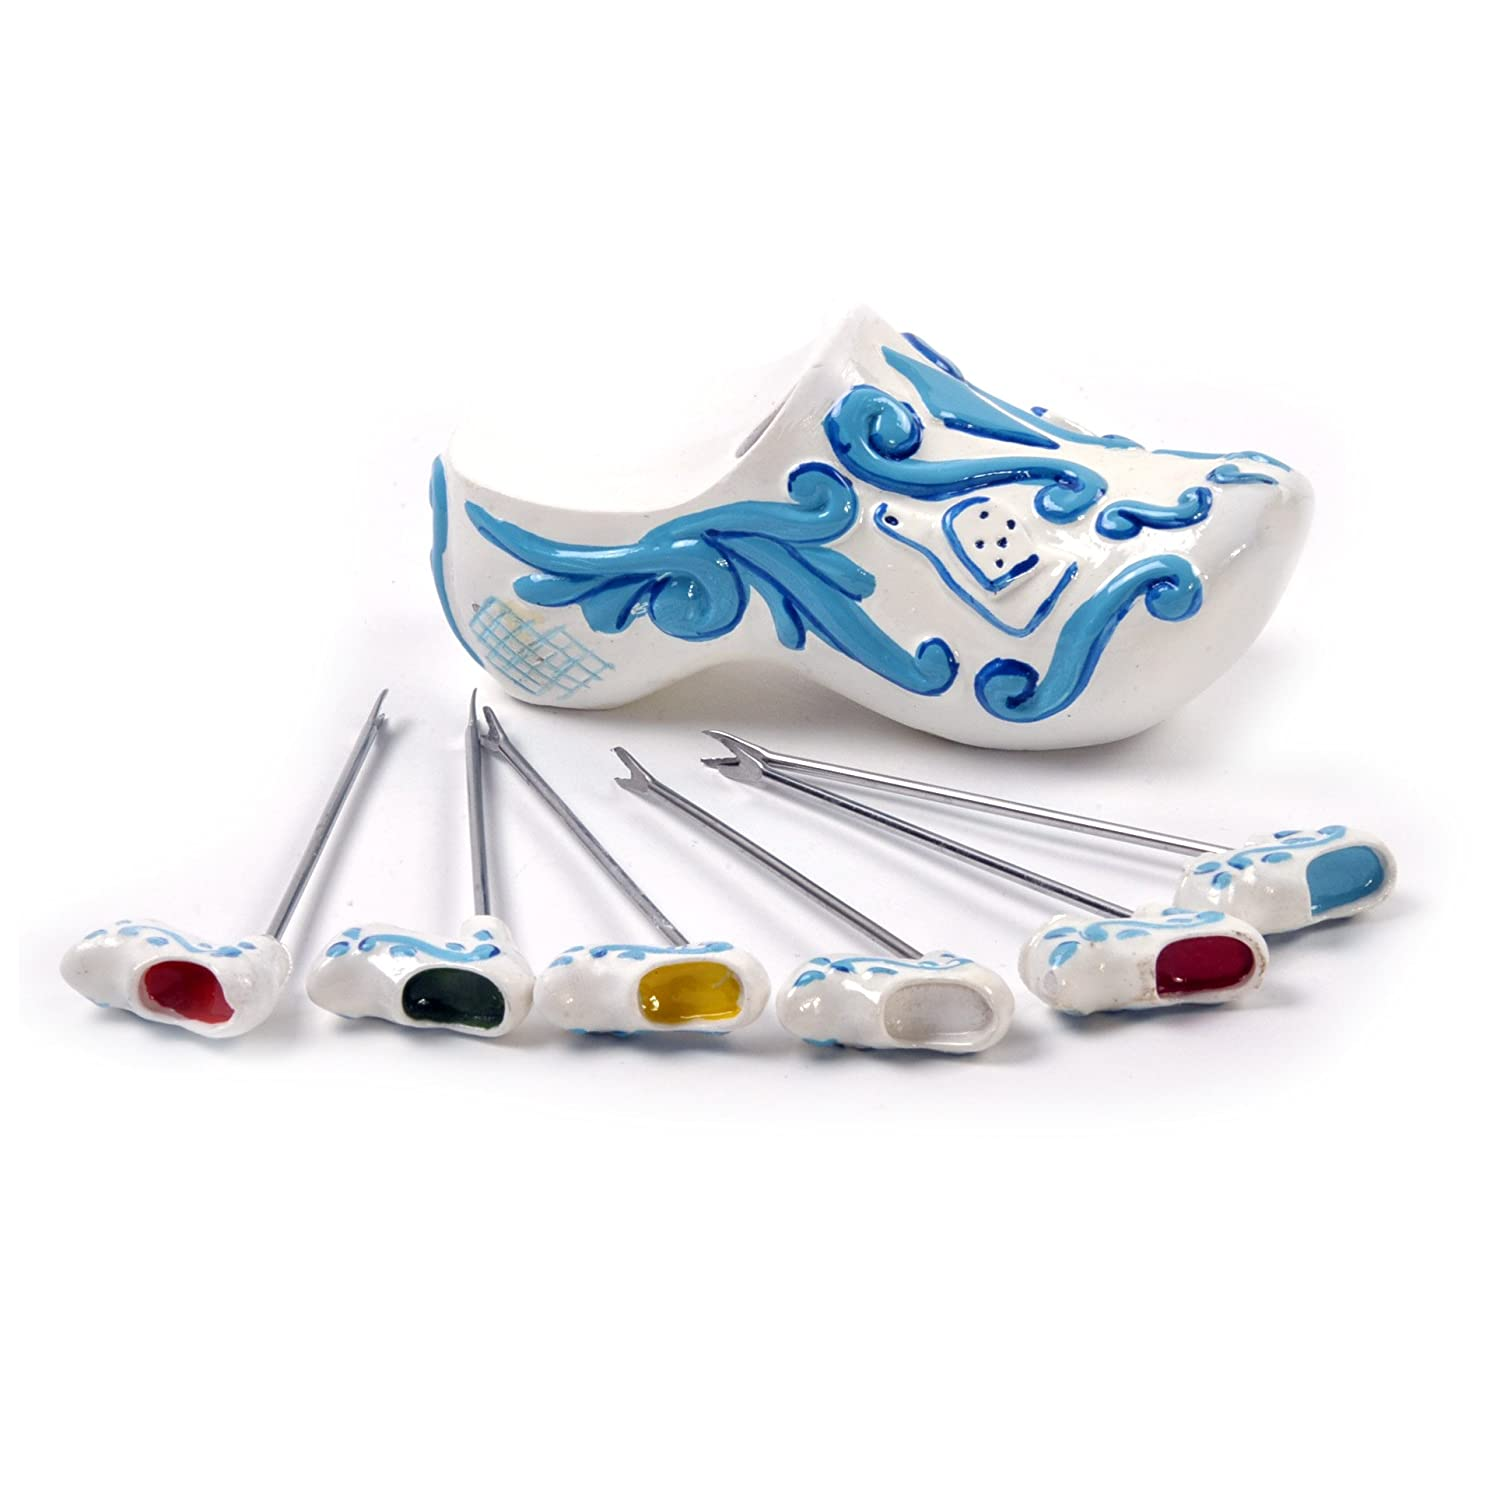 Boska Dutch Collection Small Skewer Set Wooden Shoe, Delft Blue, Cheese, Skewer, 853708 Boska Holland